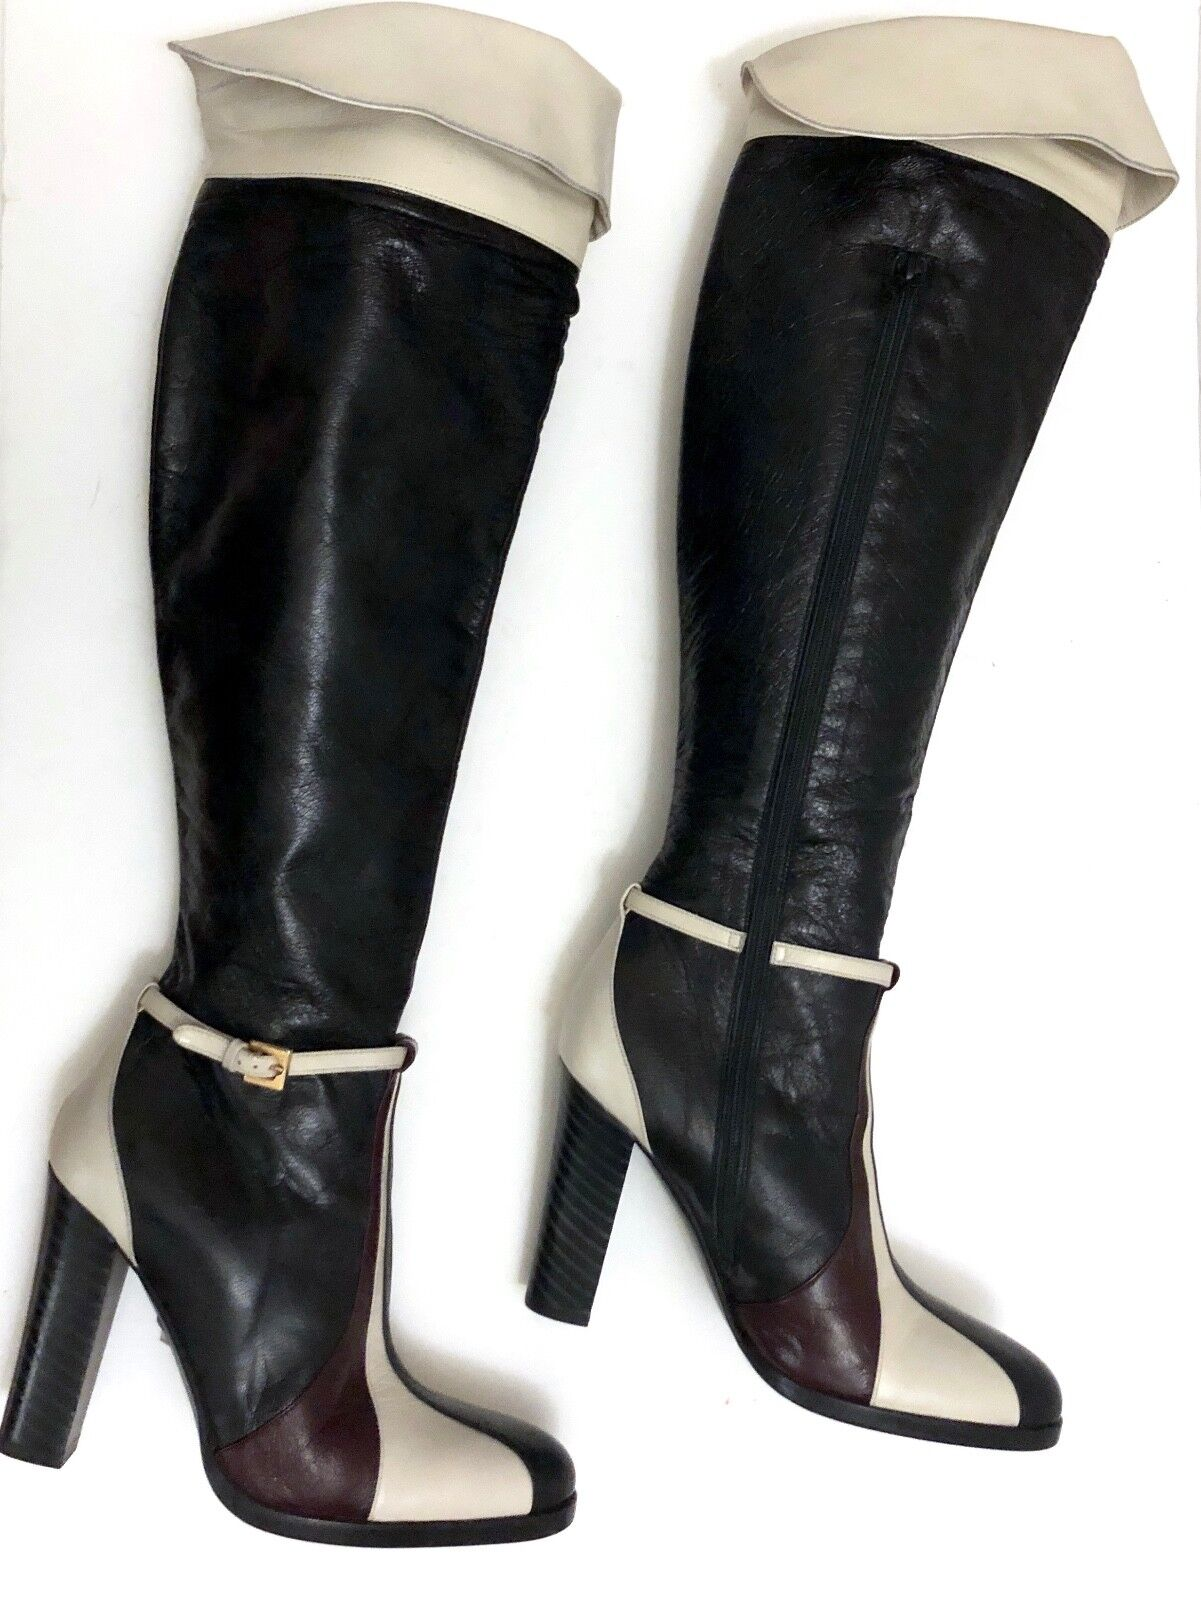 BEBE Over the Knee Genuine Leather Boots Colorblock Groovy Mod Go Go 375 Sz 5